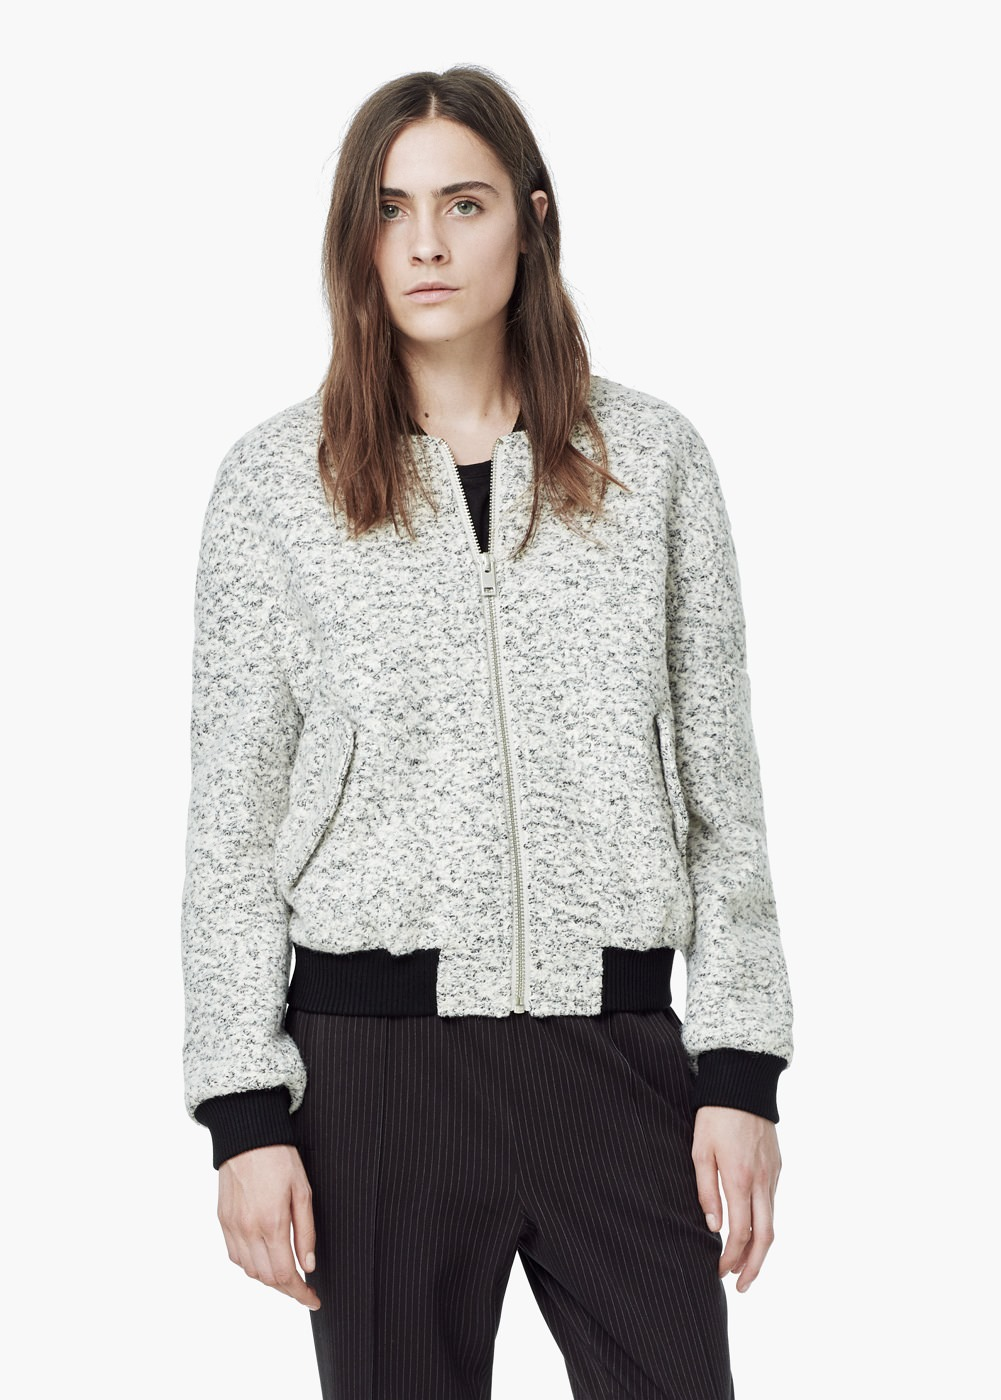 Wishlist - Les bombers   Made In Today b43230cc5f8c